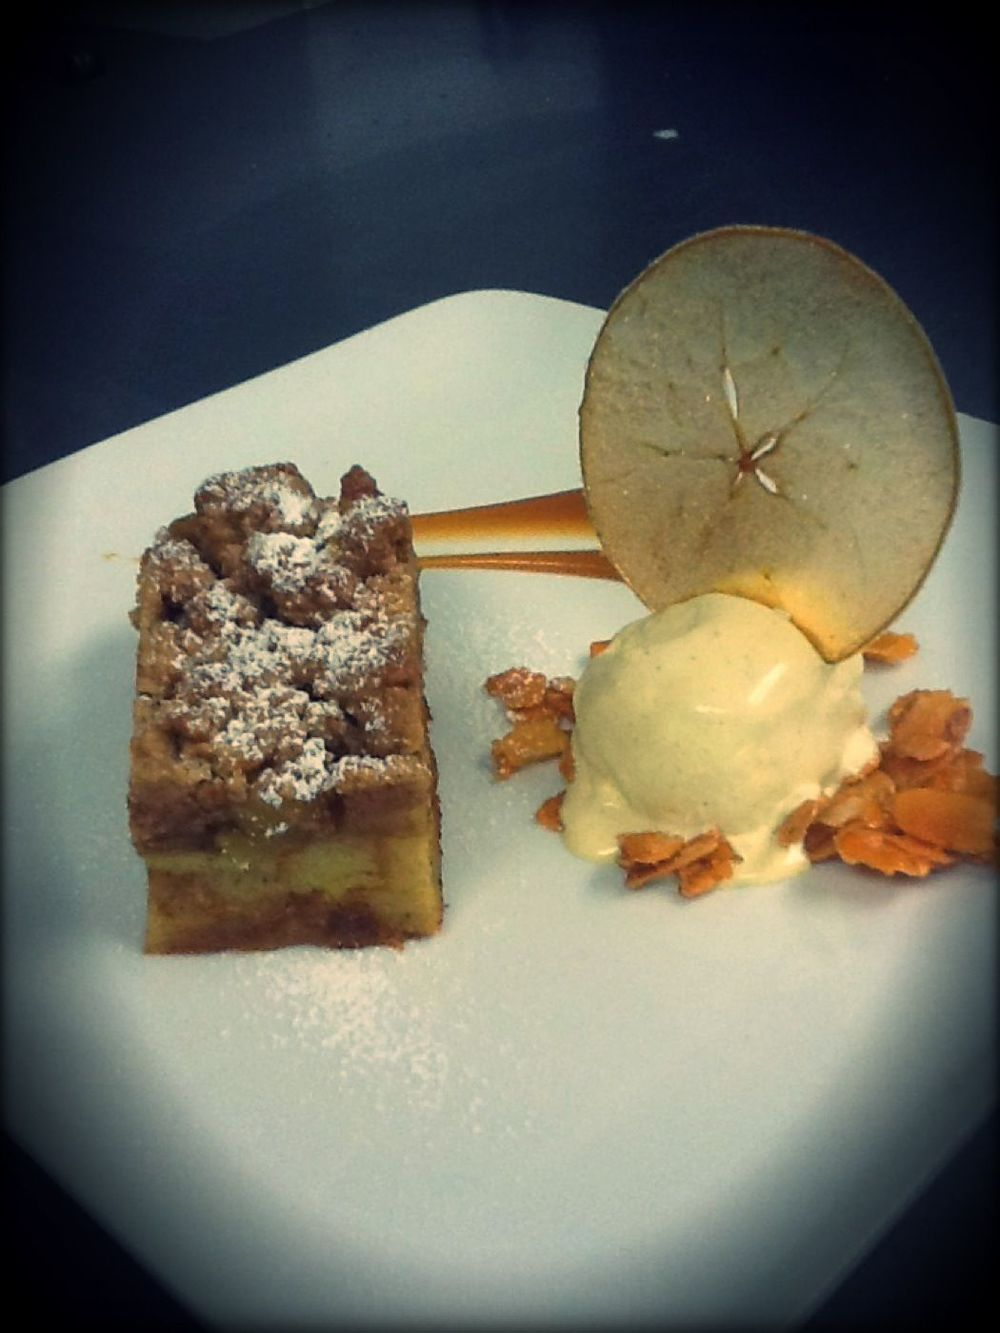 Click photo to download. Caption: Bread pudding with caramelized apples. Credit: Courtesy Amos Hayon.